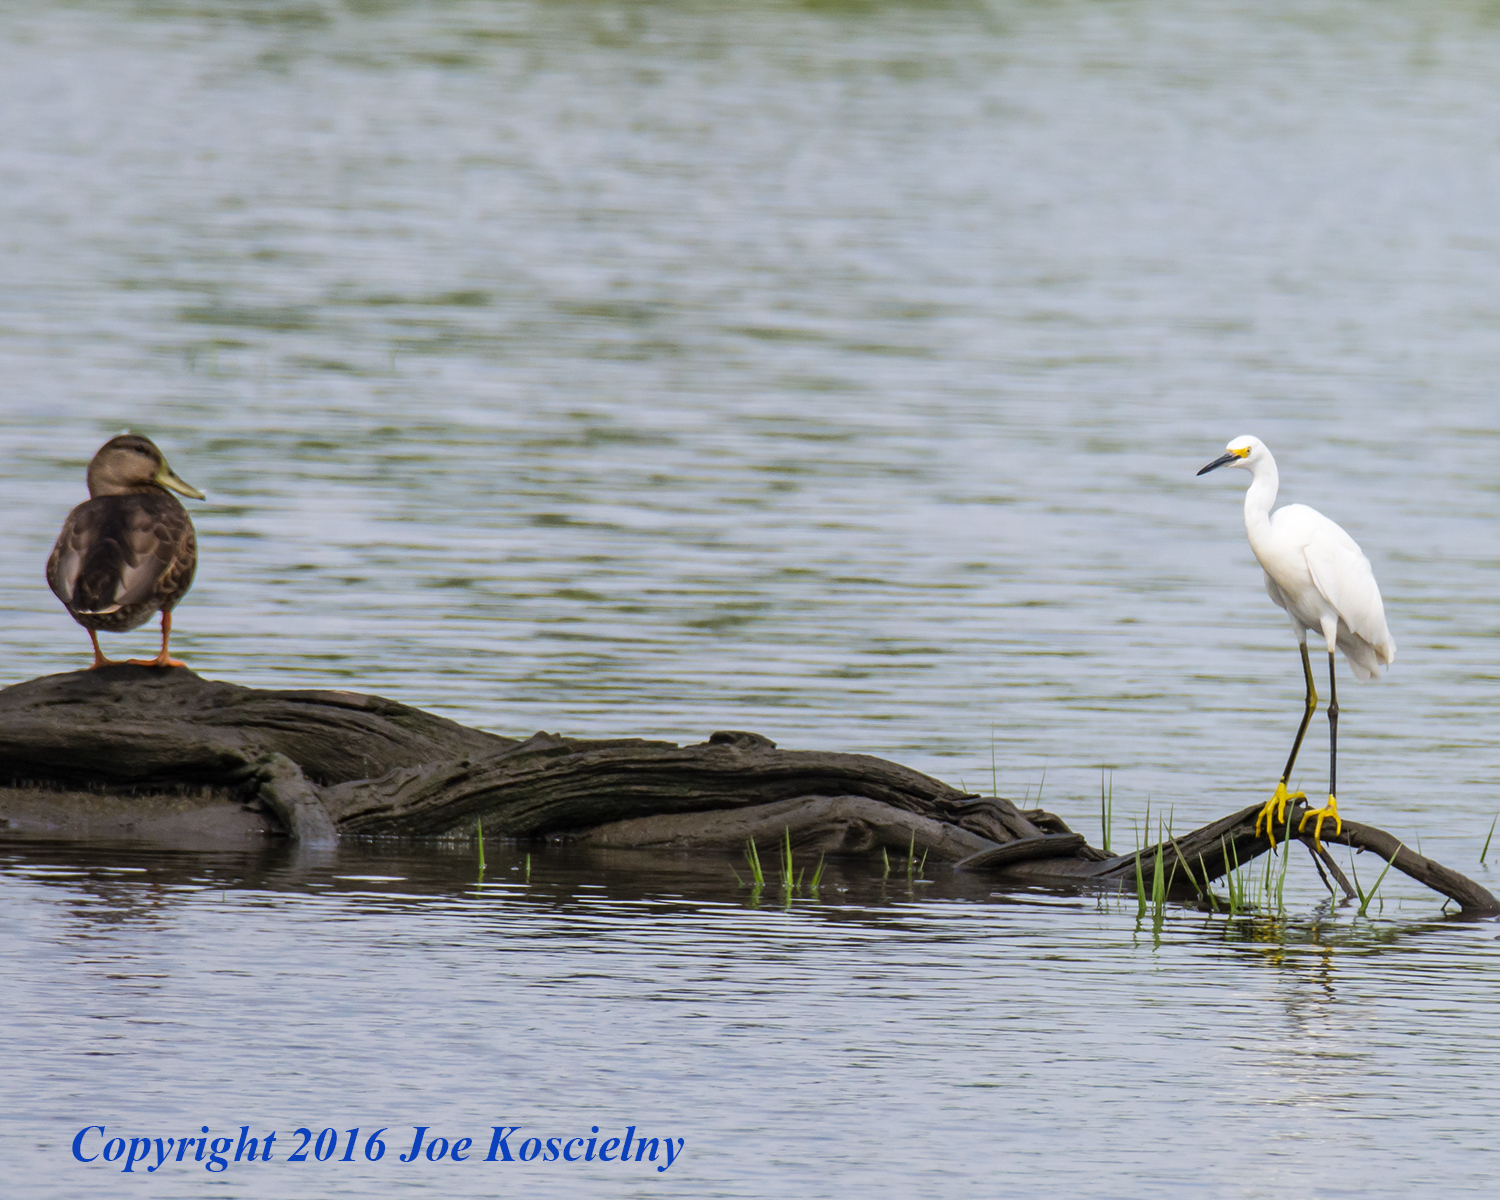 MCM 8.16.16 Duck and Snowy Egret